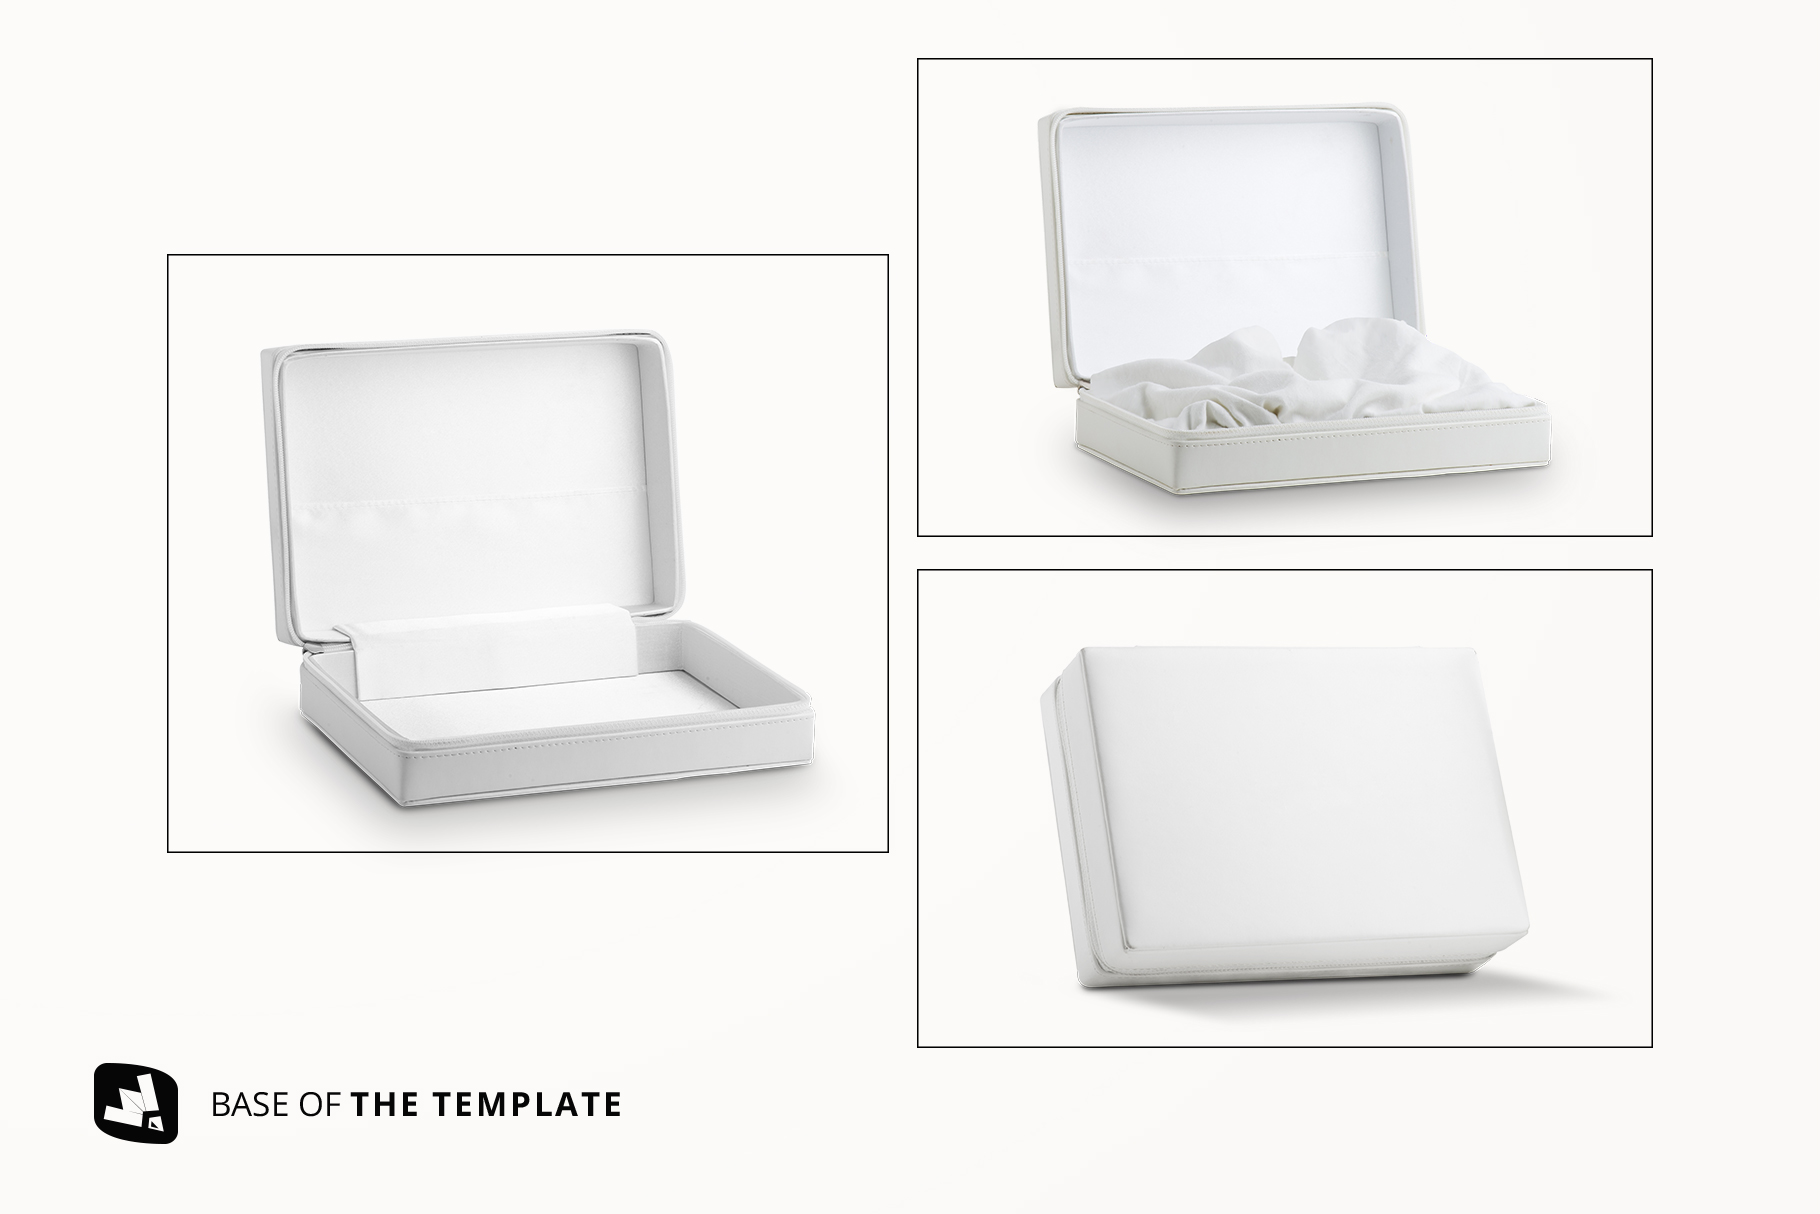 base image of the luxury apparel packaging mockup